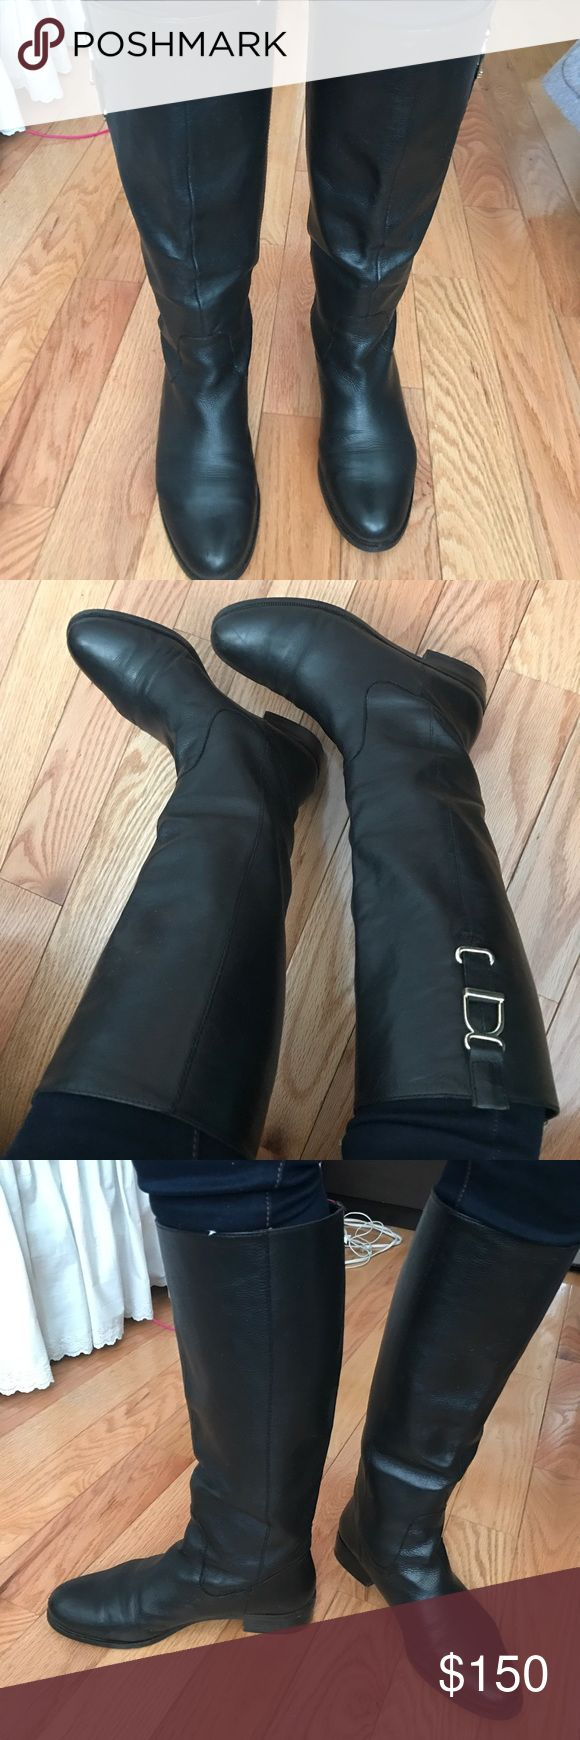 Banana Republic tall boots Black Leather boots-Size 7. Have worn them plenty of times but took great care of them. They are extremely comfortable and look great with jeans/dresses, etc. There is a small scuff on the front of the right shoe but not very noticeable. Send me offers!!!! Banana Republic Shoes Heeled Boots